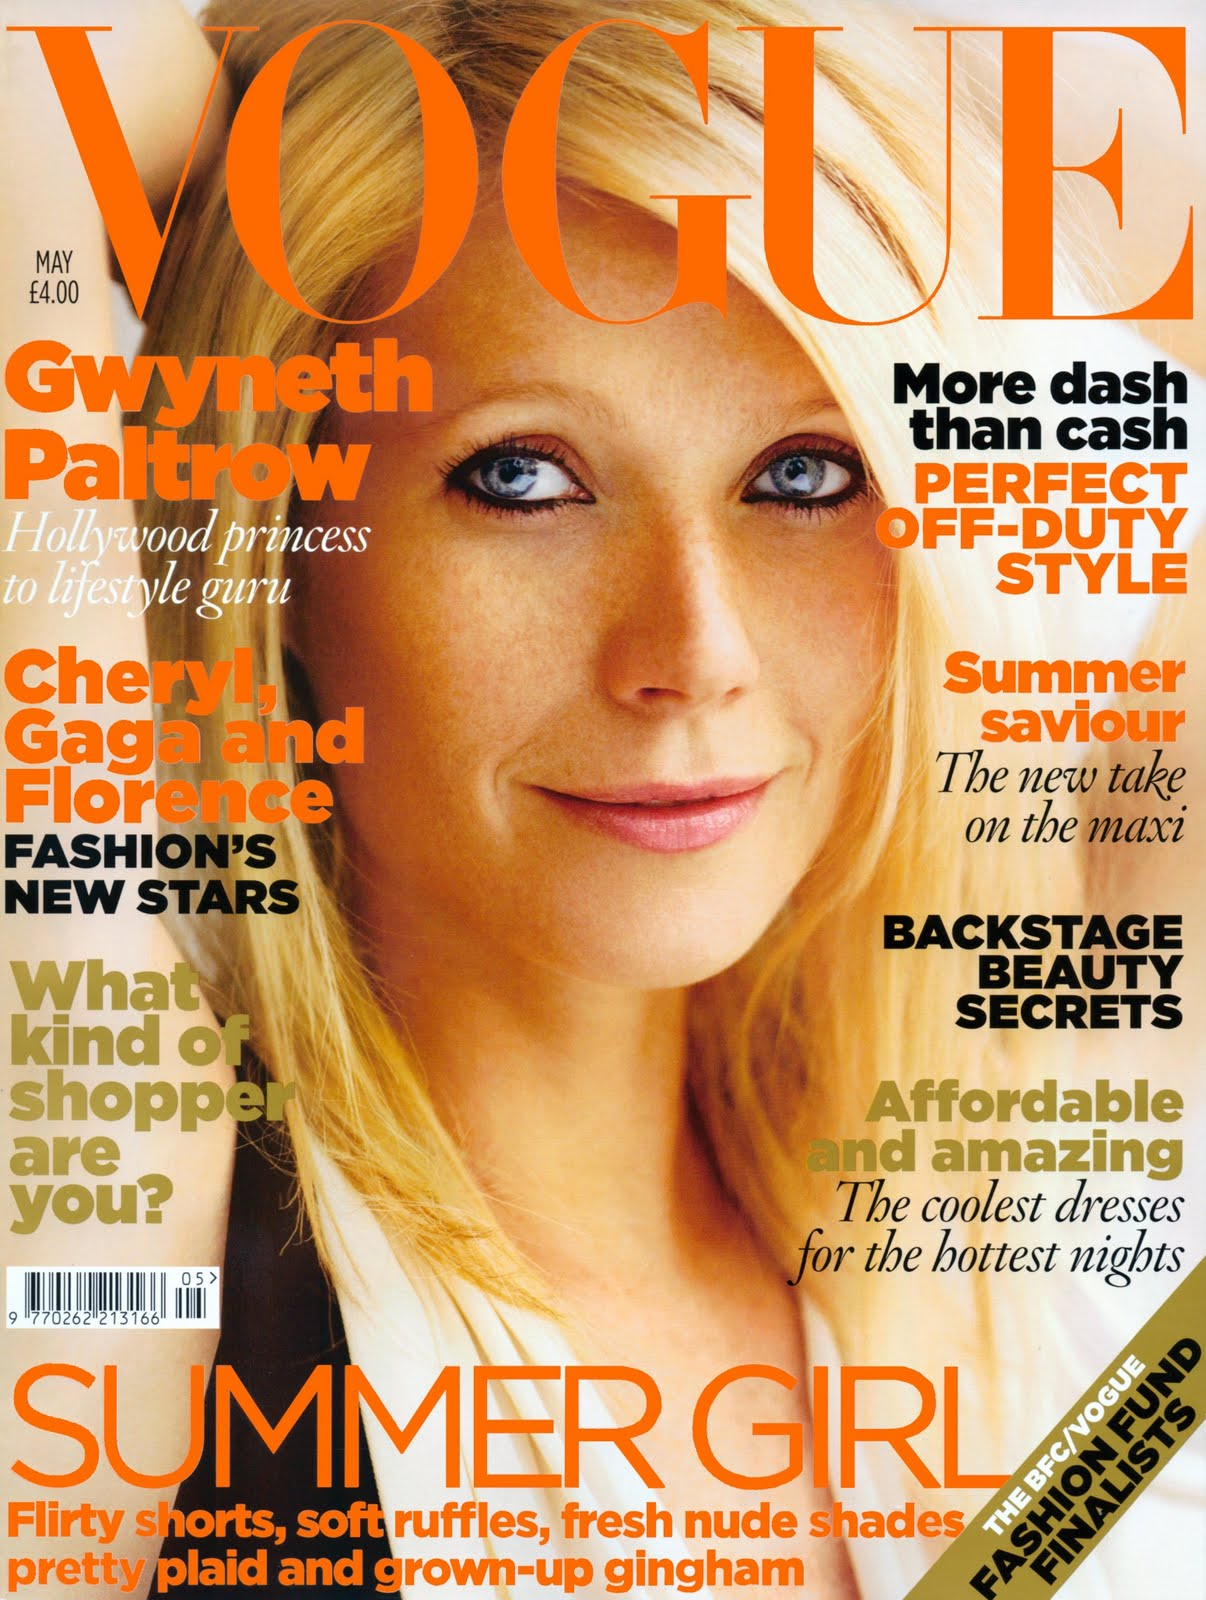 http://1.bp.blogspot.com/_5unRgztSAyo/S99mQH_HxBI/AAAAAAAAA0A/bwZE4eeTsGg/s1600/vogue+uk+may+2010+Gwyneth+Paltrow+by+Mario+Testino.jpg